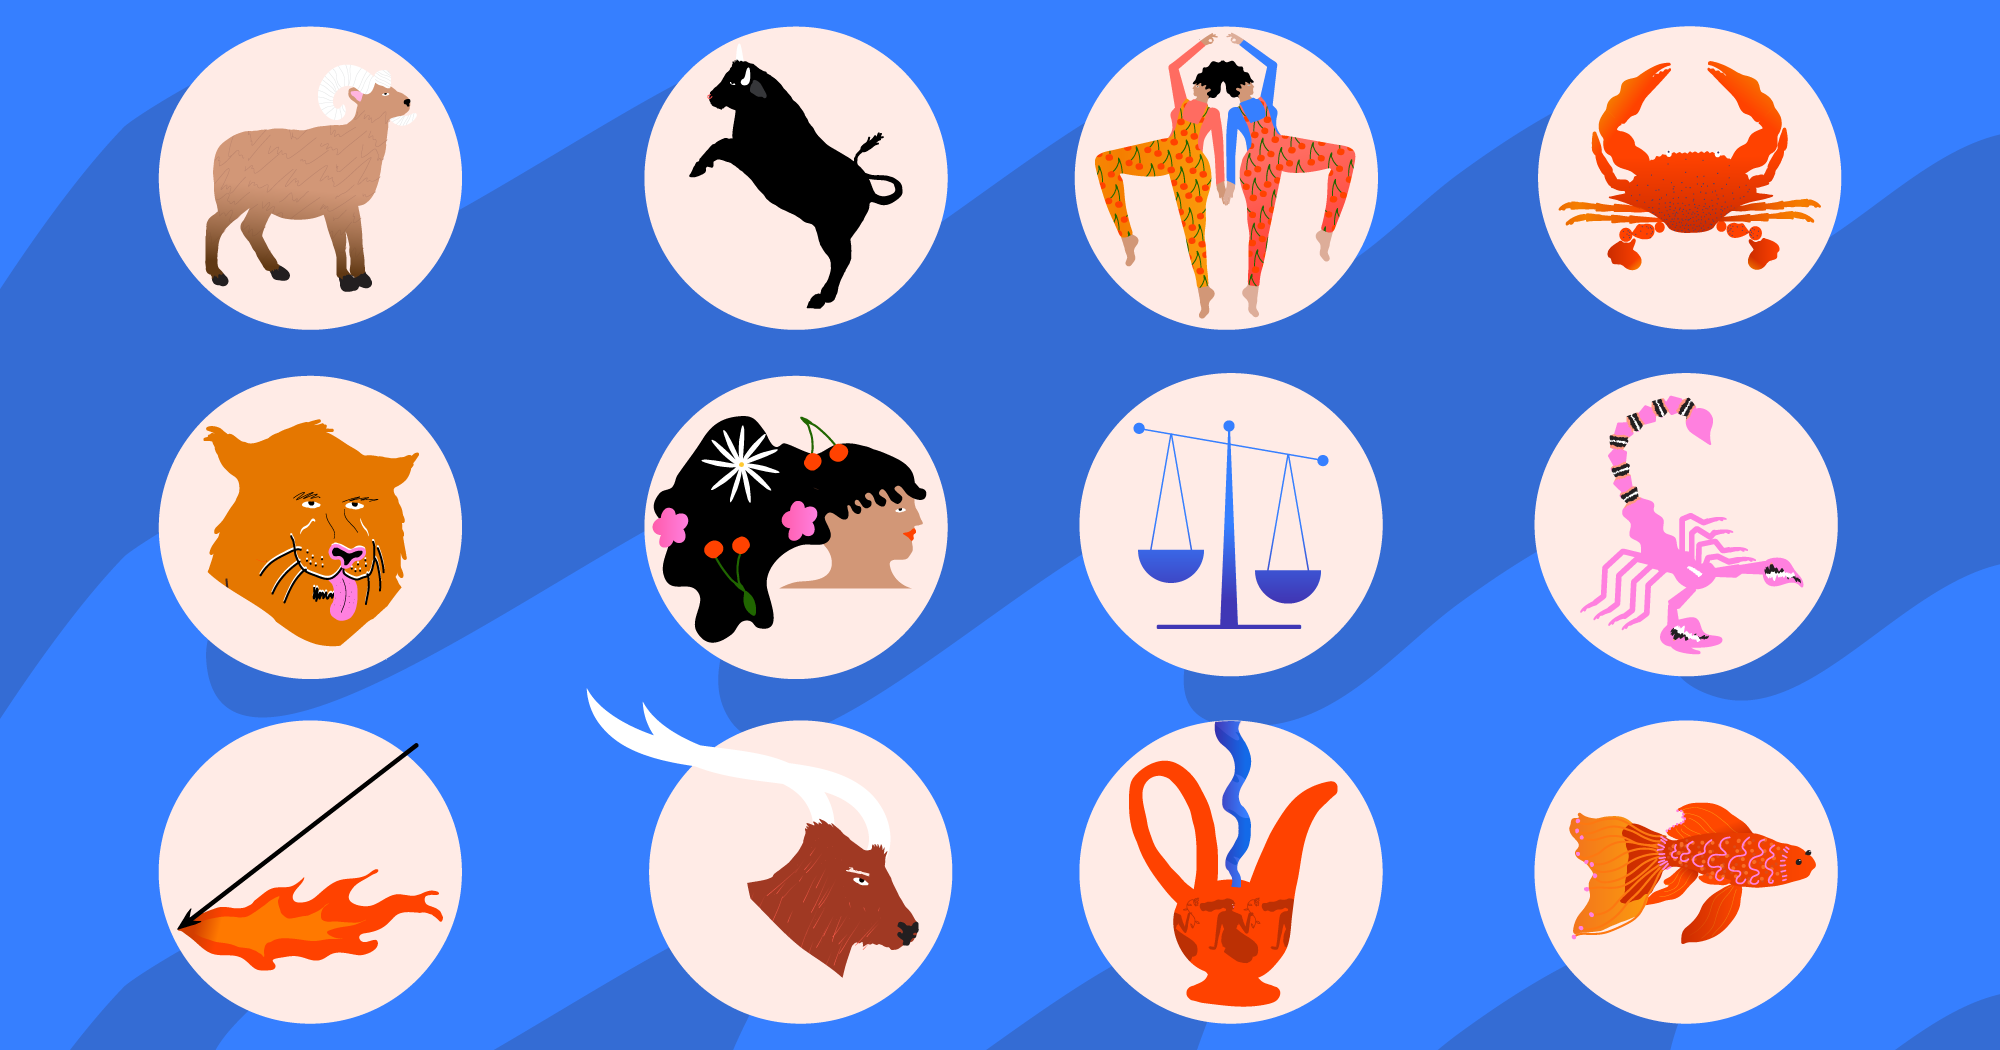 2019 Yearly Horoscope Predictions For Every Zodiac Sign